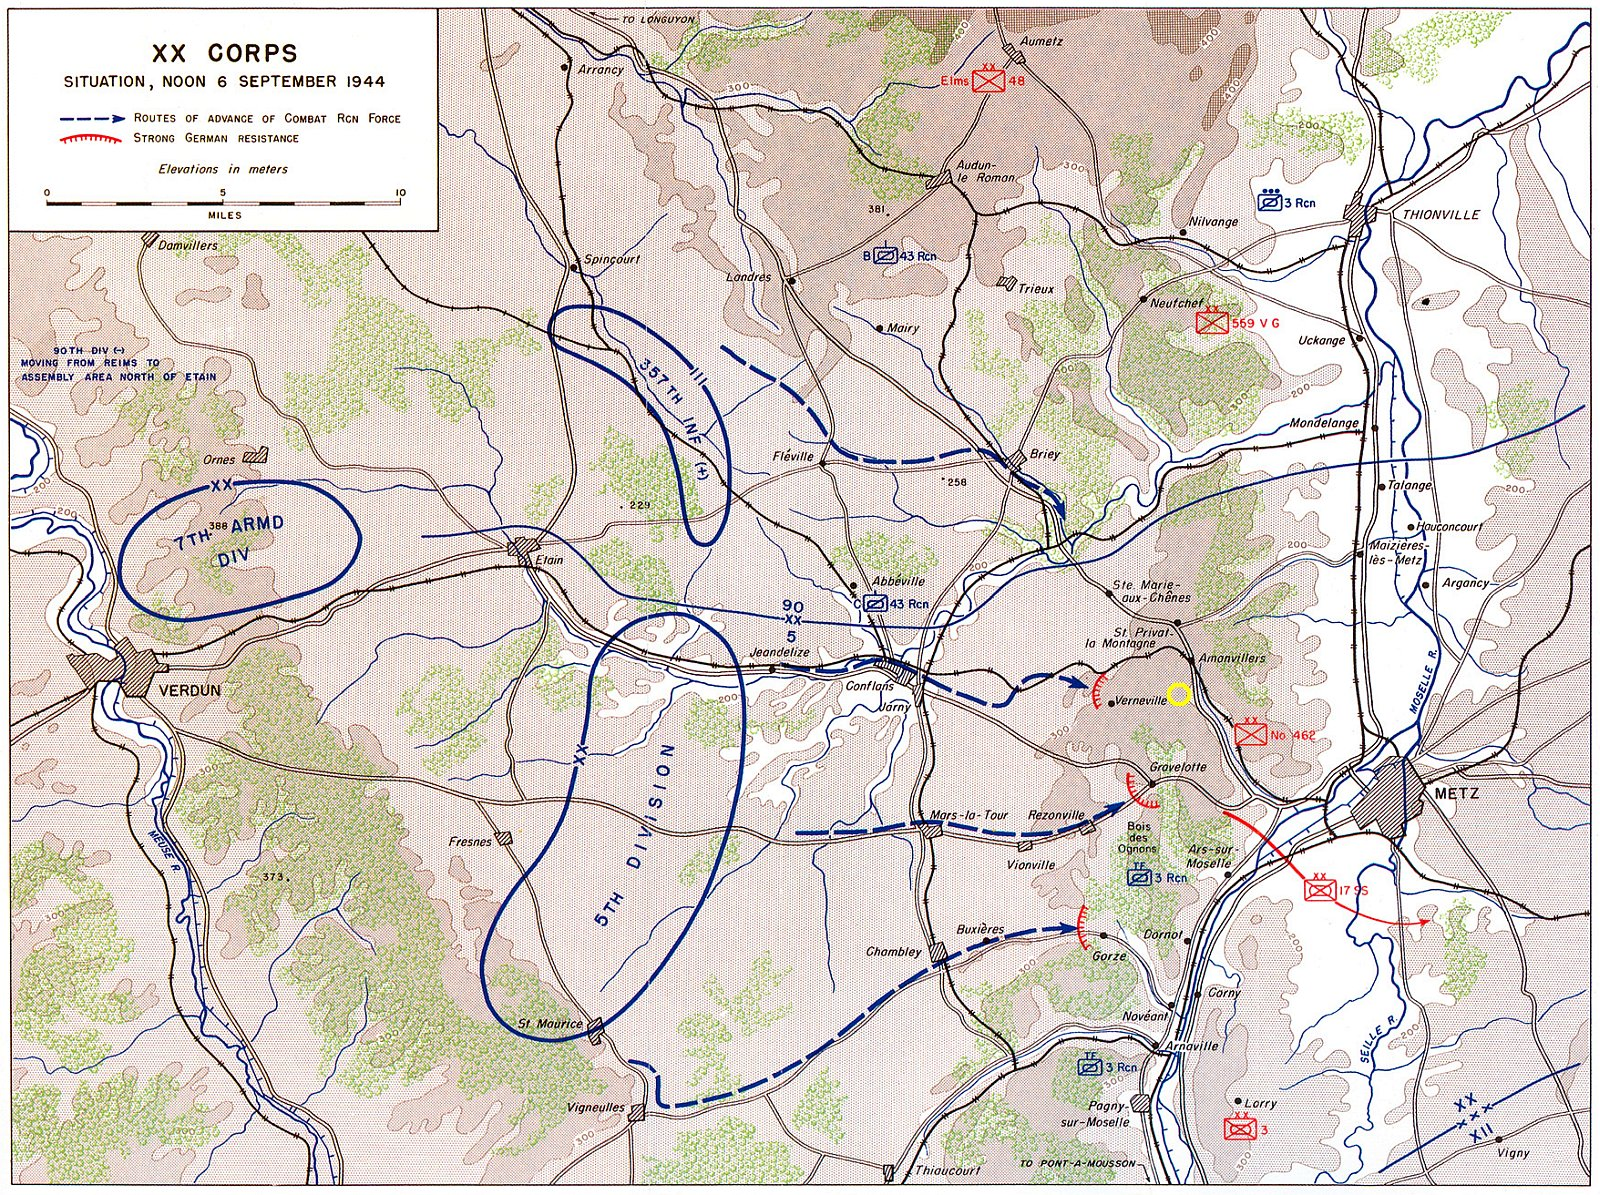 Situation map 06.09.1944